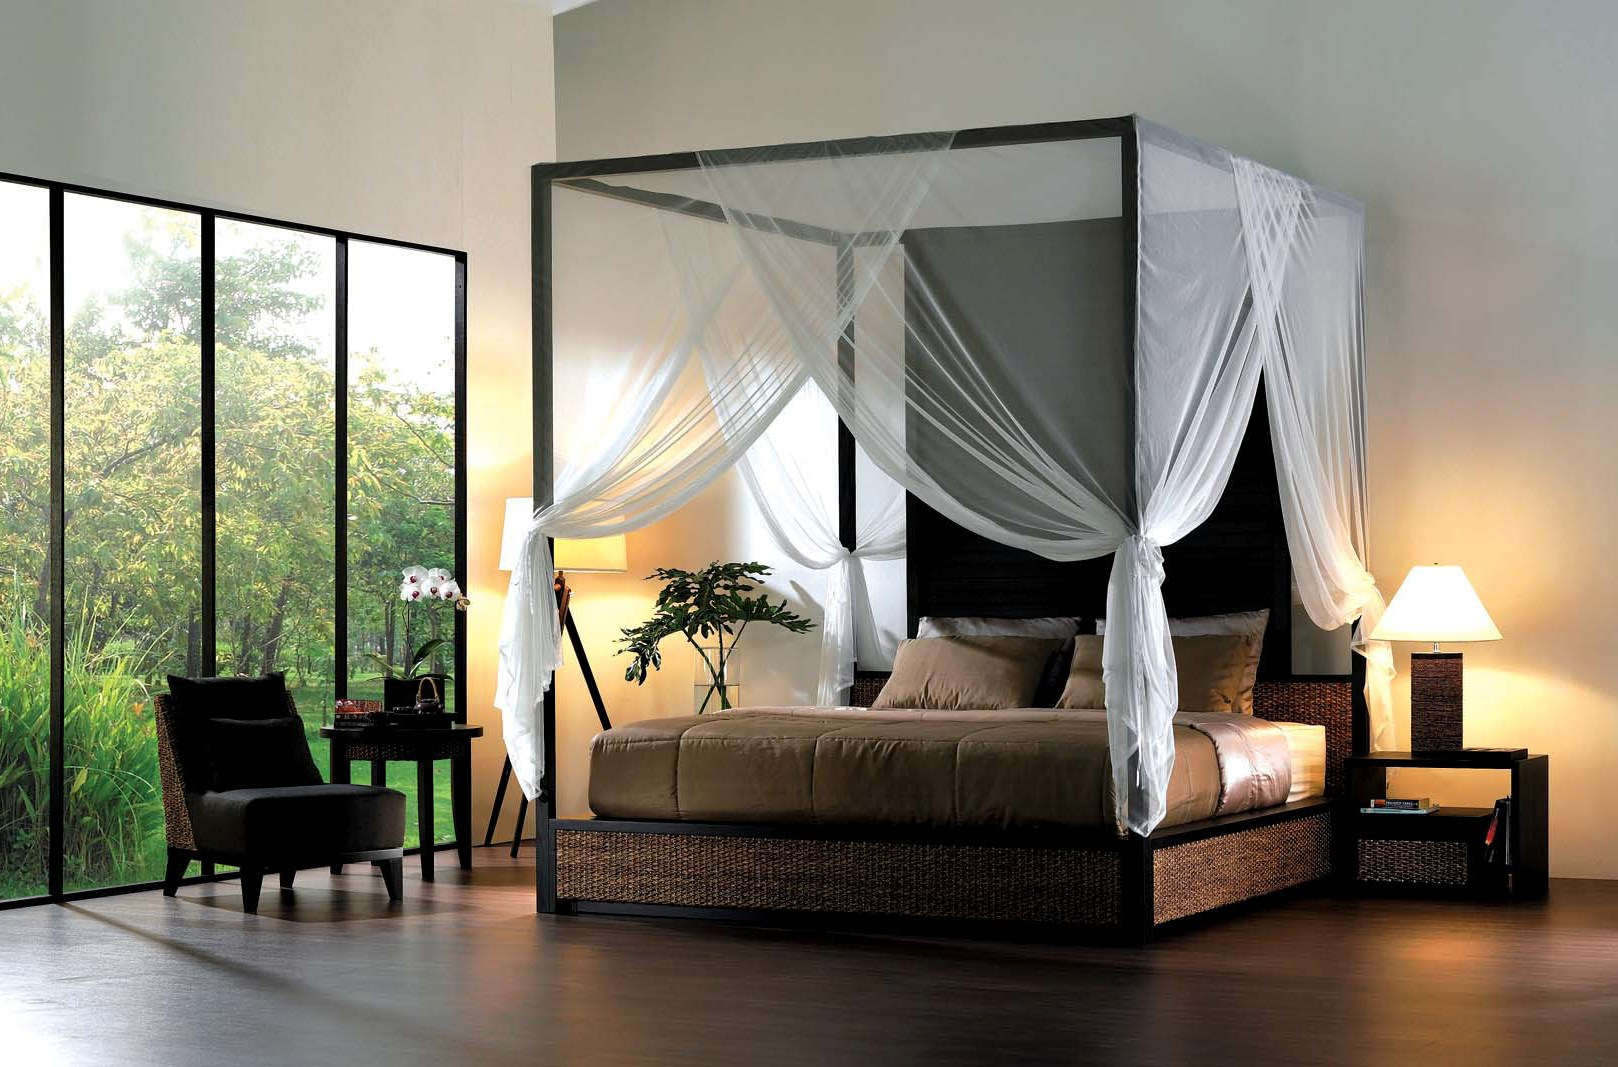 Enhance Your Fours Poster Bed With Canopy Bed Curtains Artmakehome